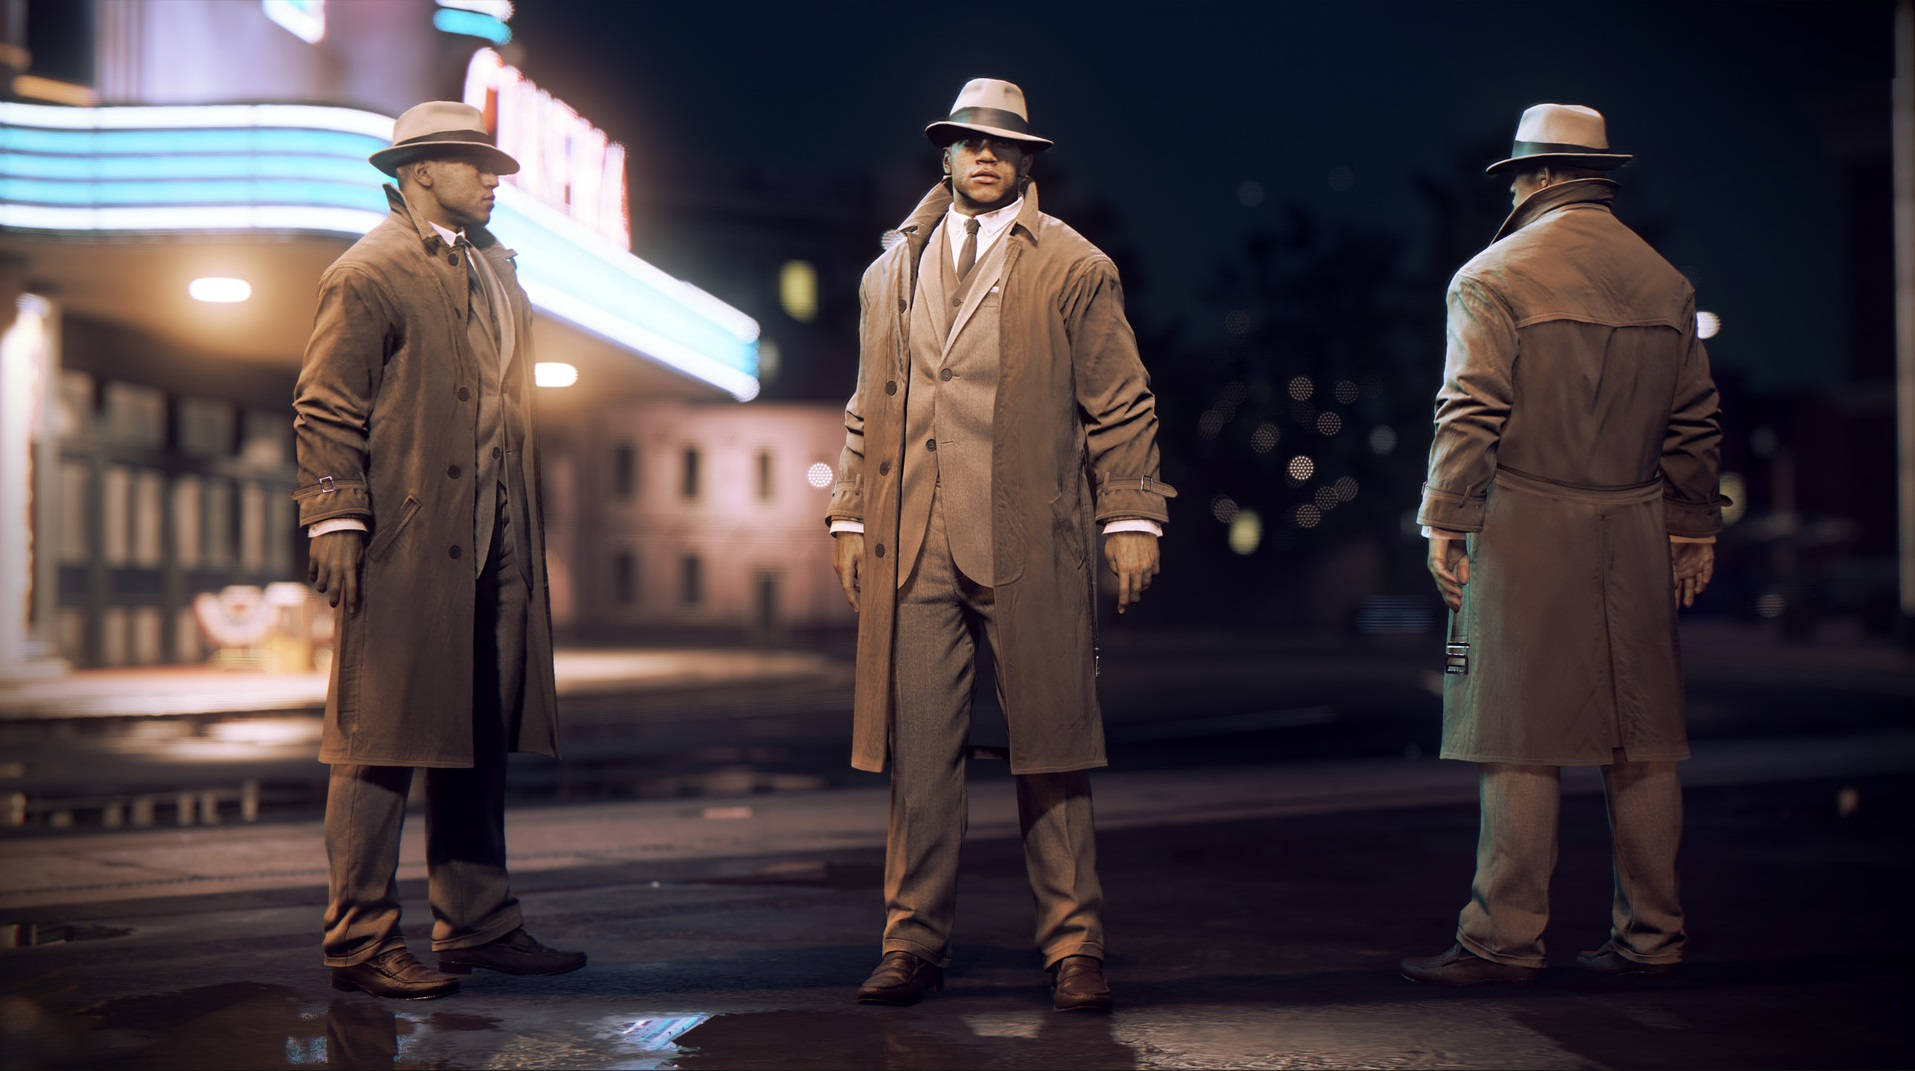 Fist Person Mod + NoFuckingGrindMod + Classico Outfit (Offline Game Copy) No 2K Account needed.